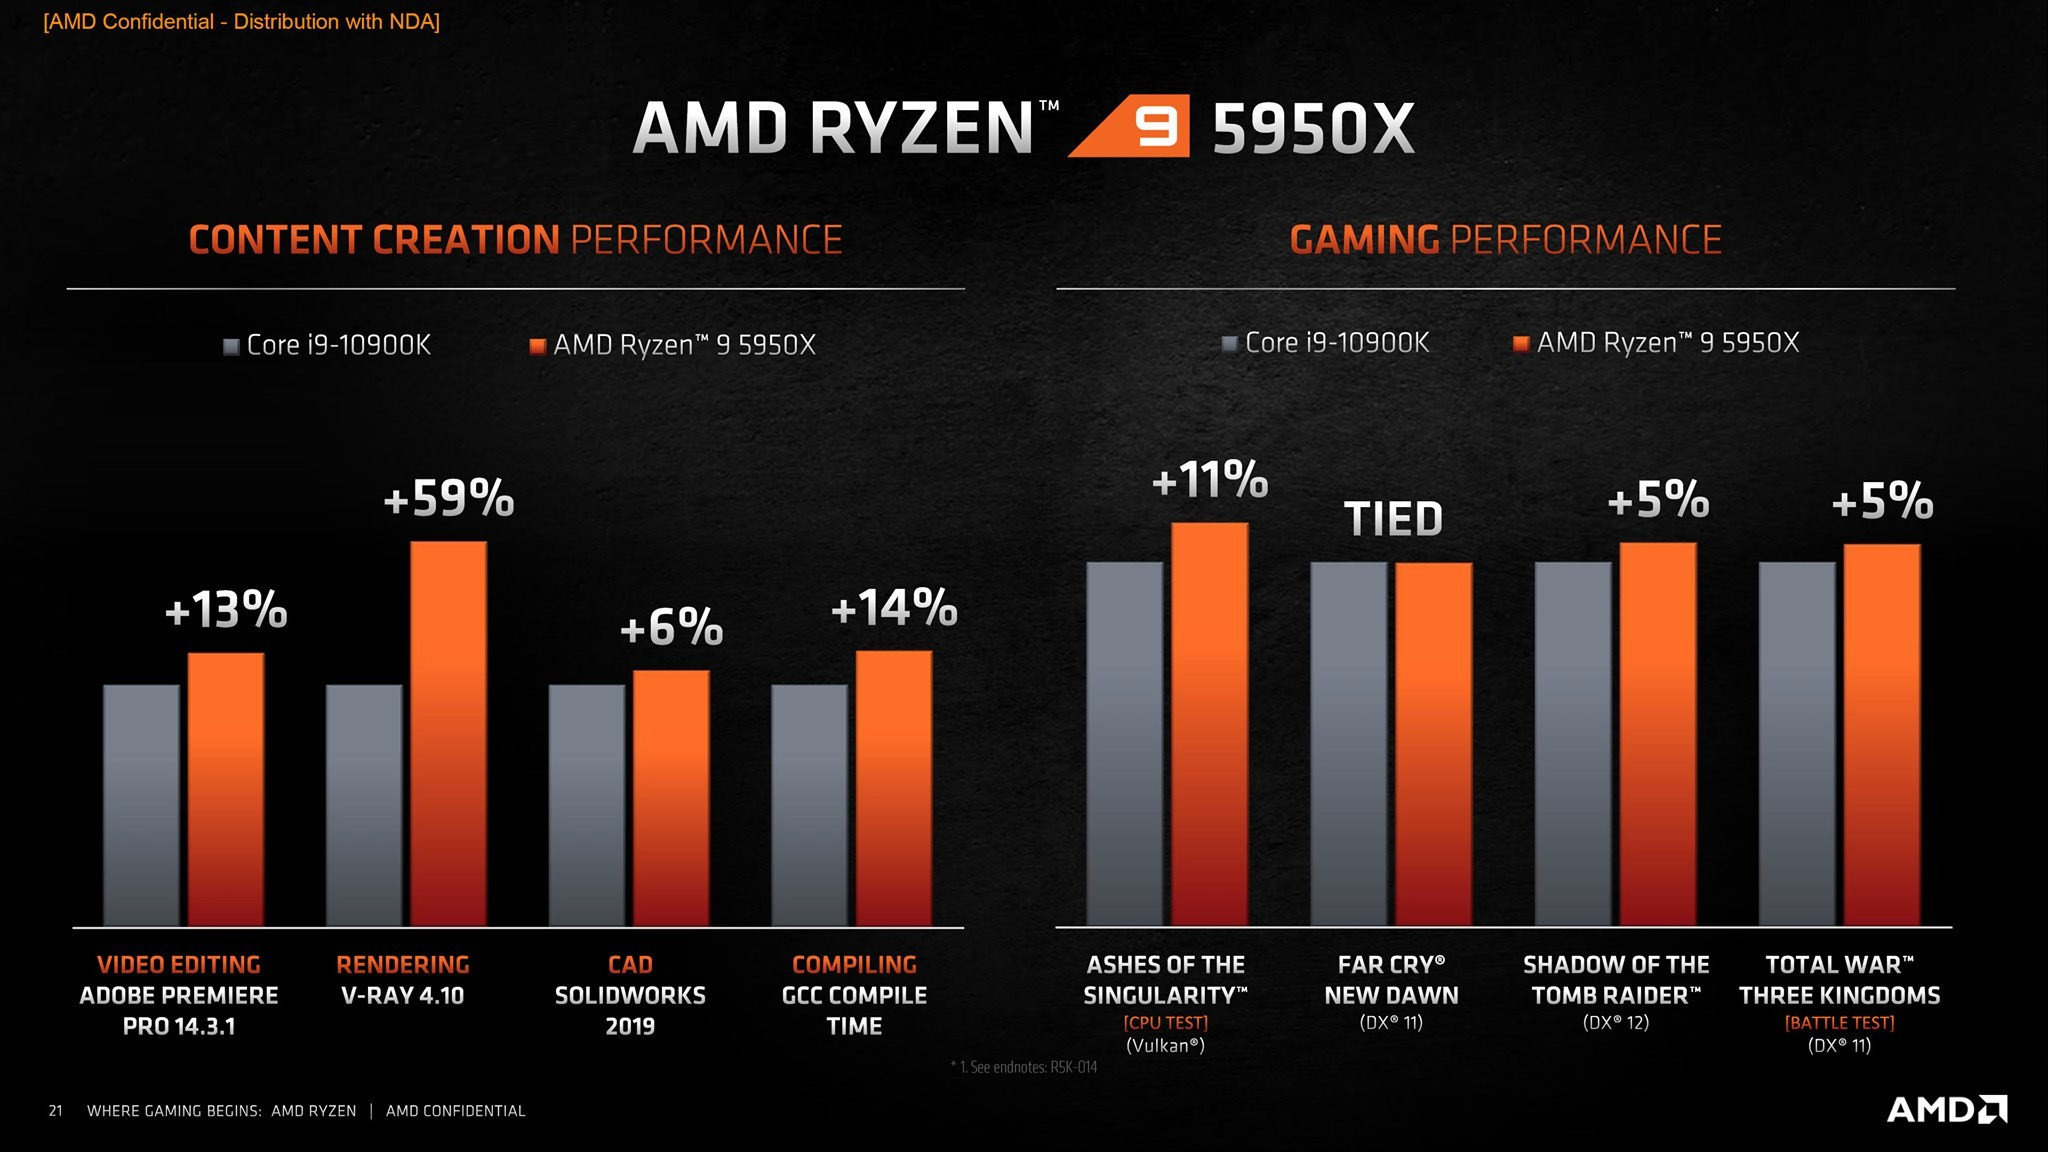 CPU AMD Ryzen 9 5950X performance